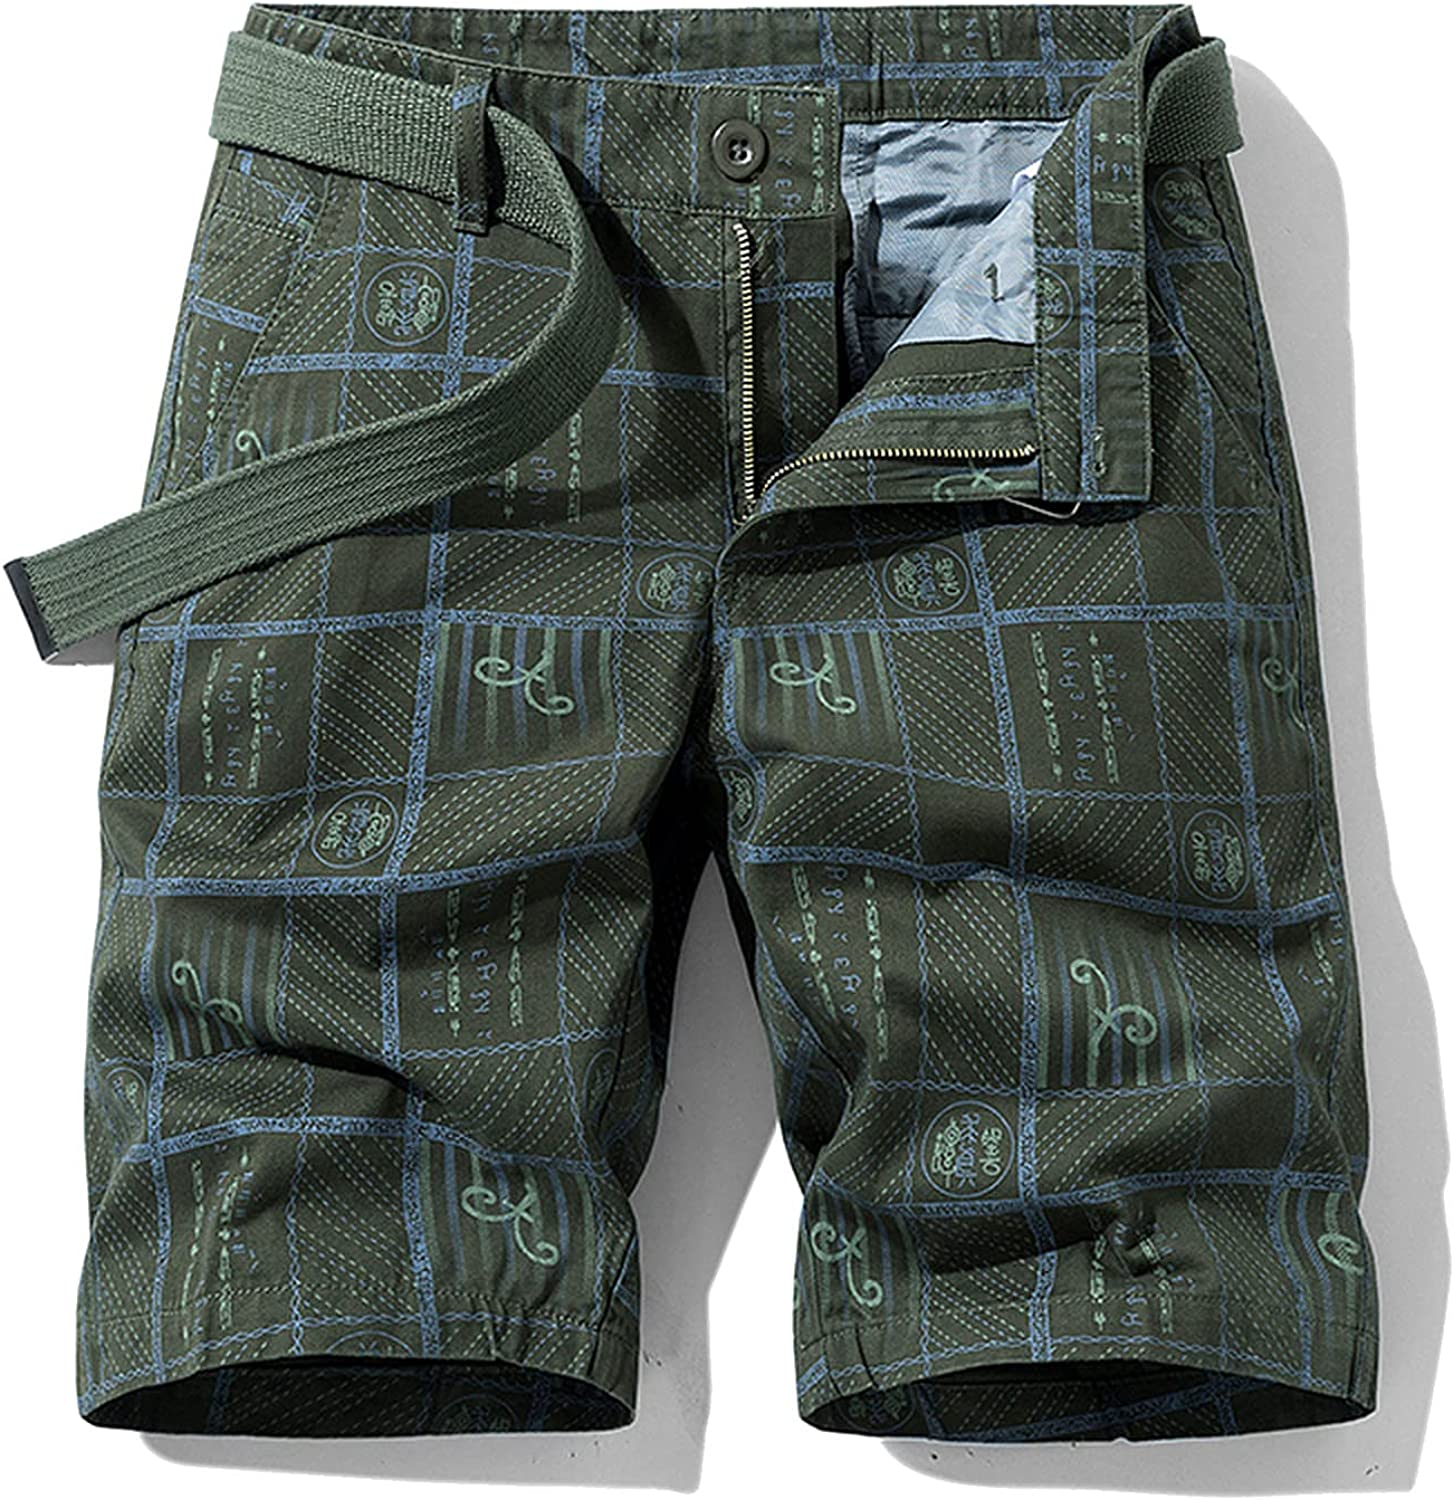 B dressy New Summer Cargo Shorts Men Camouflage Cotton Khaki Loose Casual Outwear Overalls-Green-2-38